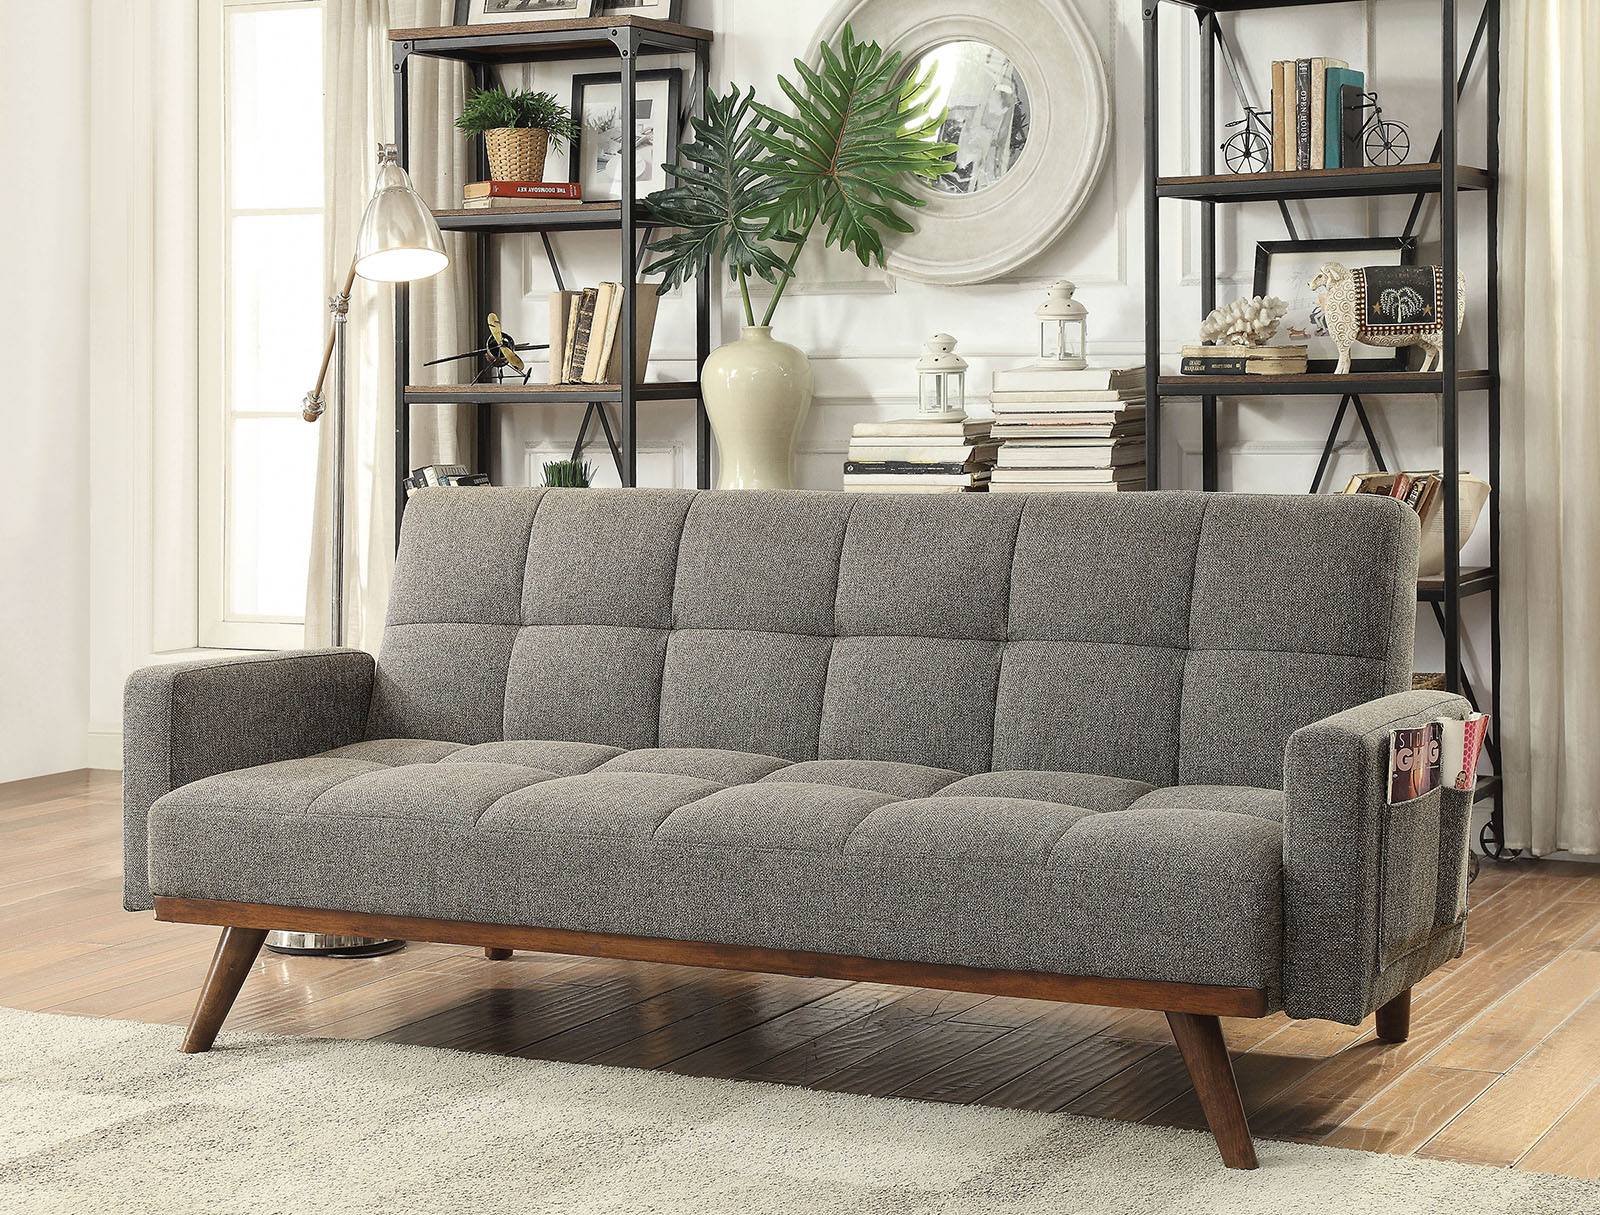 bed los cubed images deluxe angeles modern viesso sofa futons full